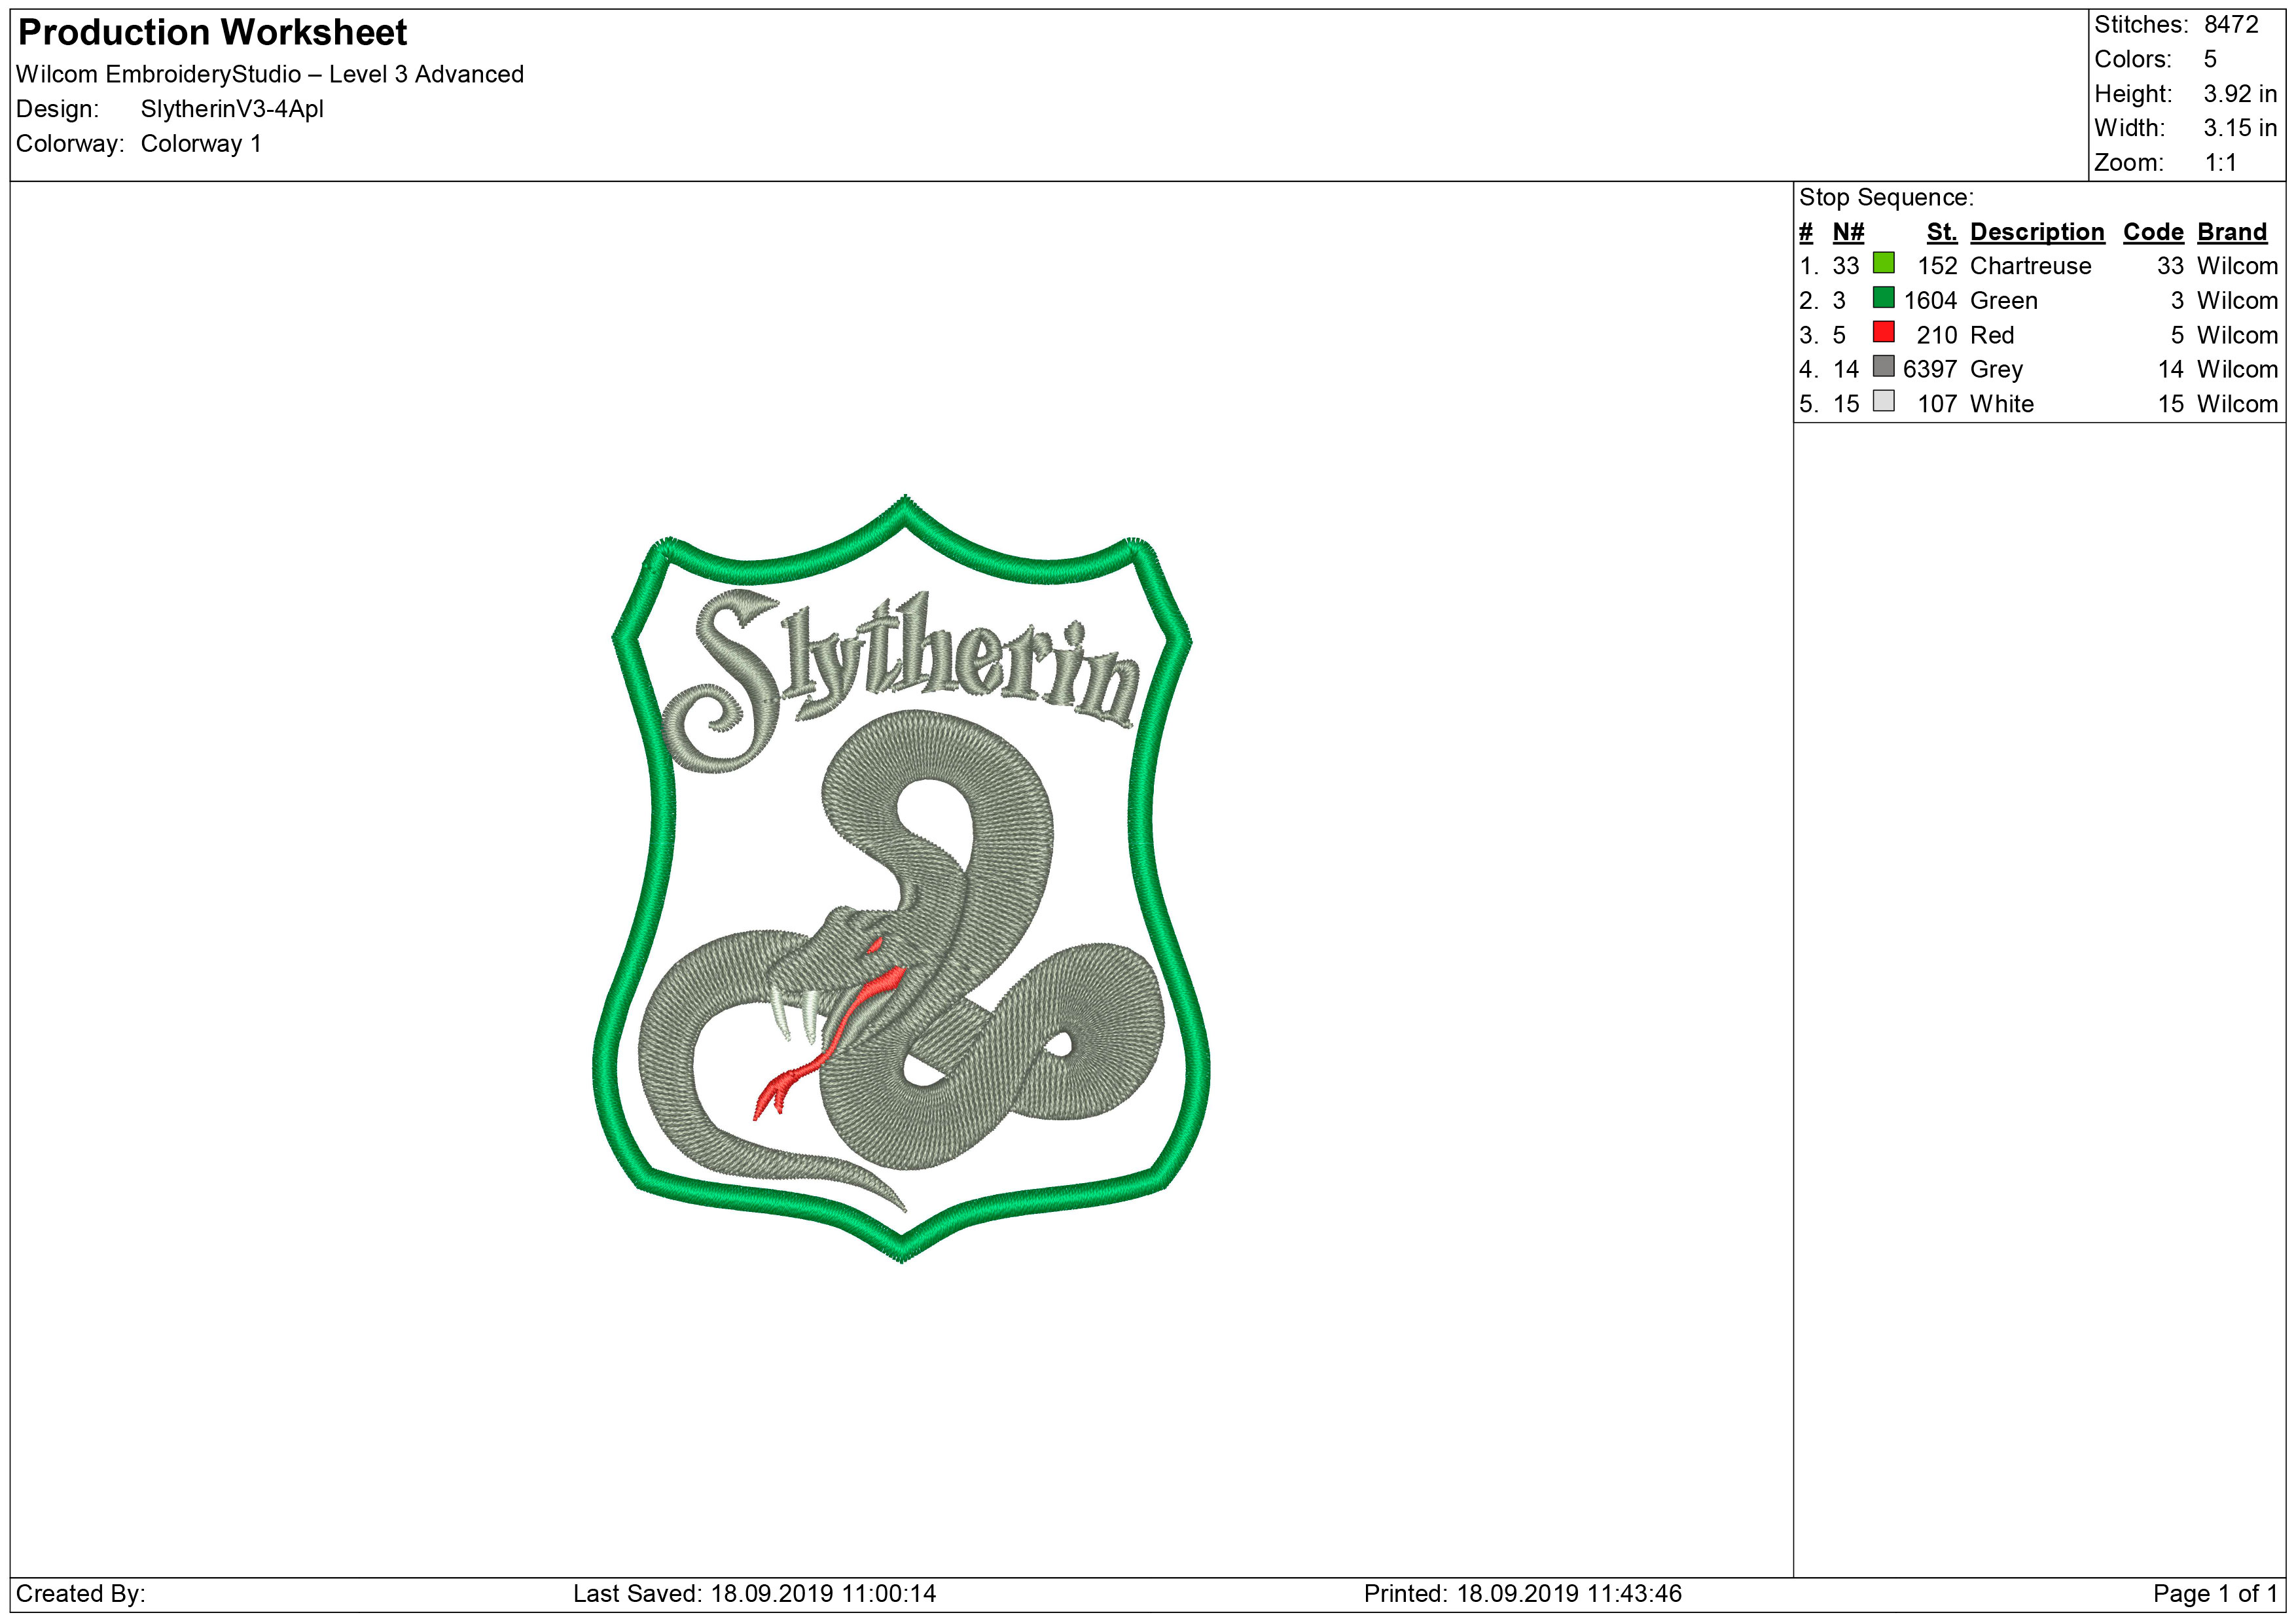 Slytherin Embroidery